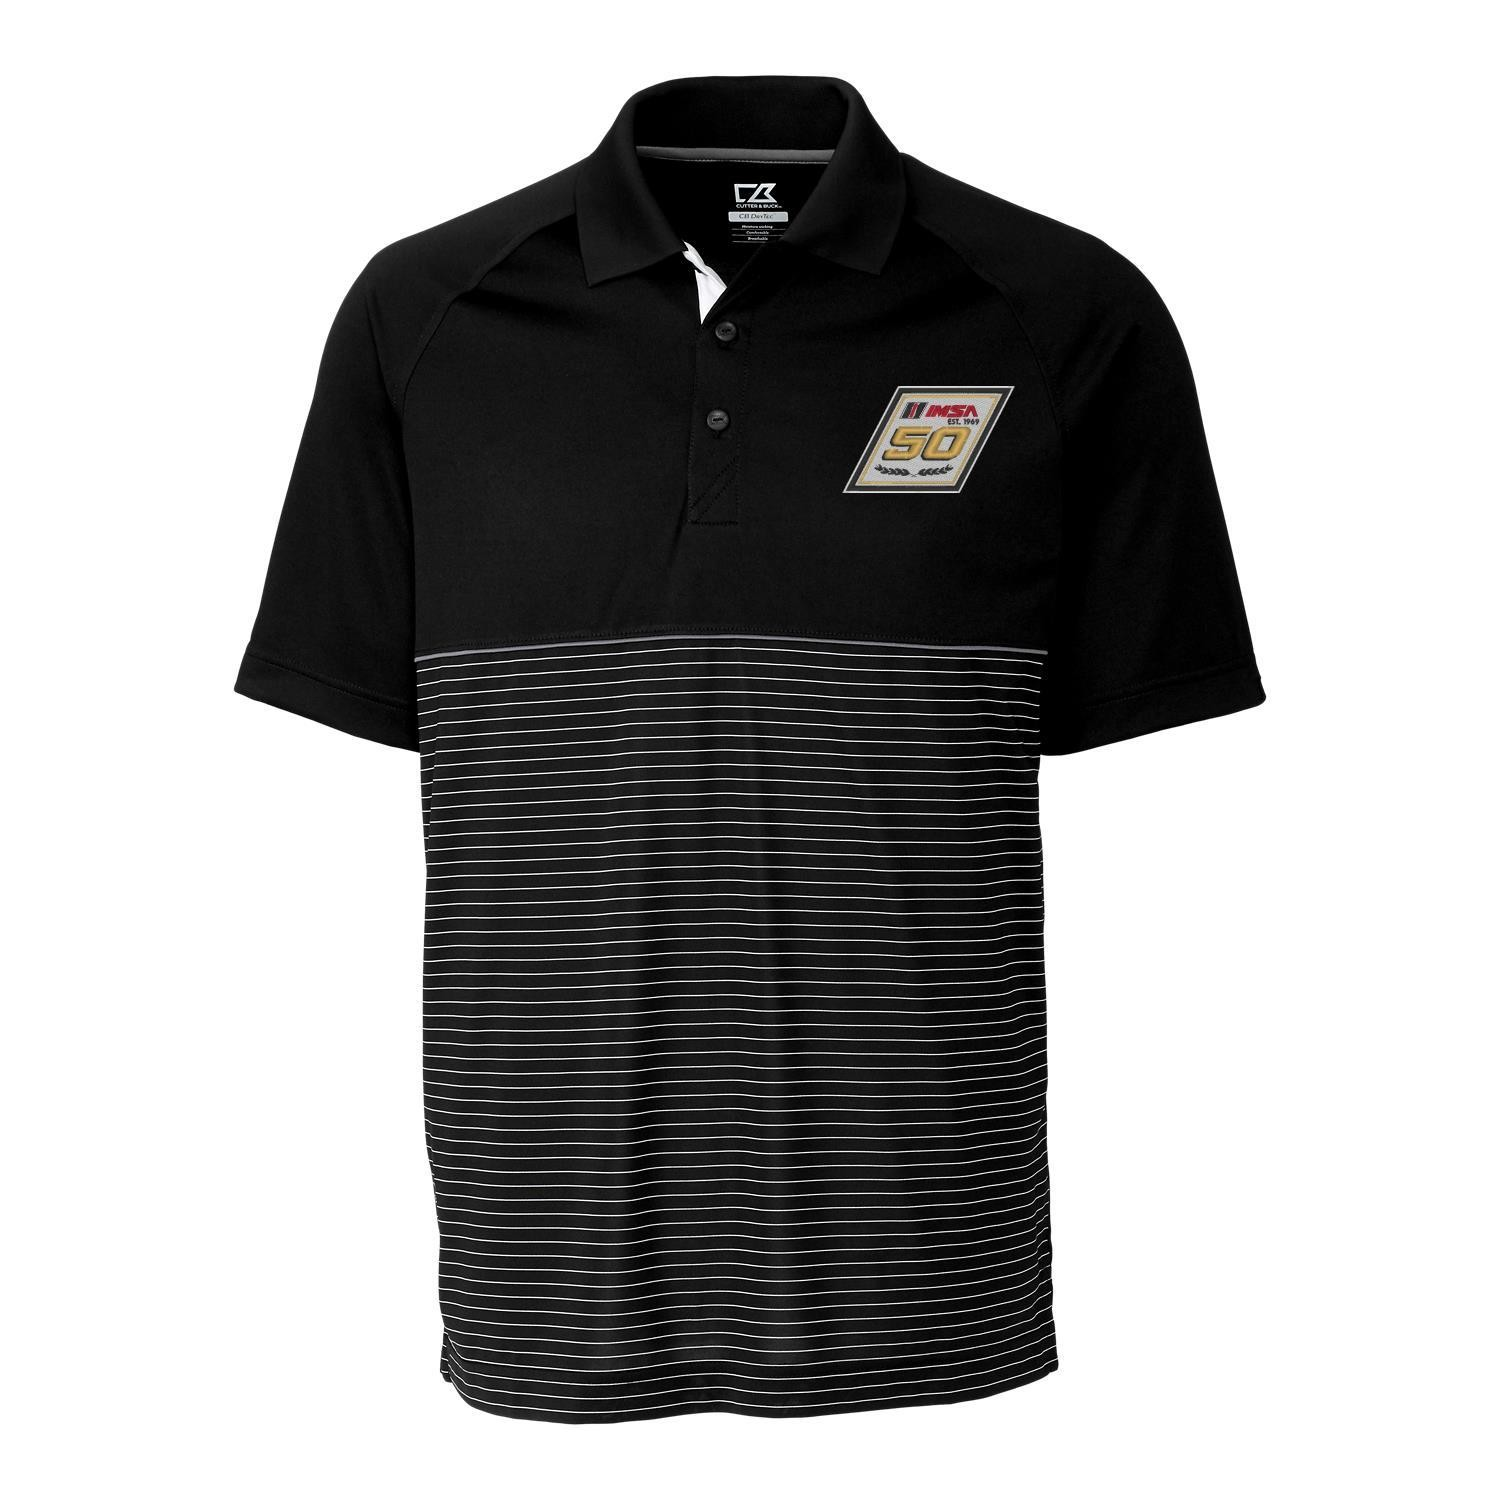 IMSA 50th Cutter & Buck Junction Stripe Polo - Black/Stripes